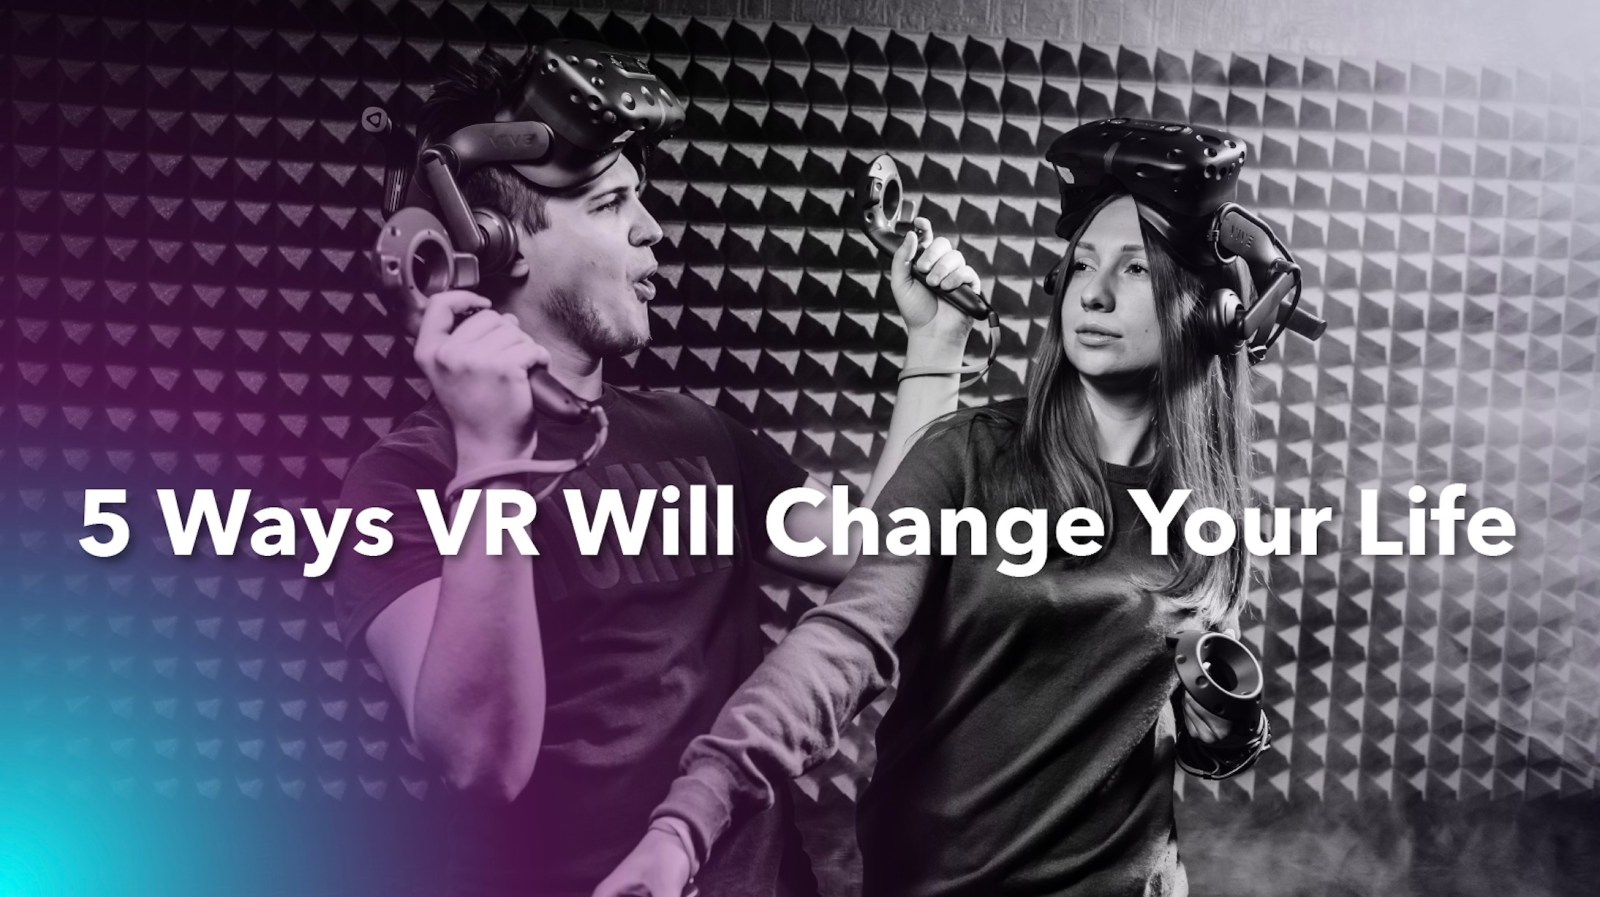 5 Ways VR Will Change Your Life! Travel, Gaming, Shopping, Exploration, and Relationships